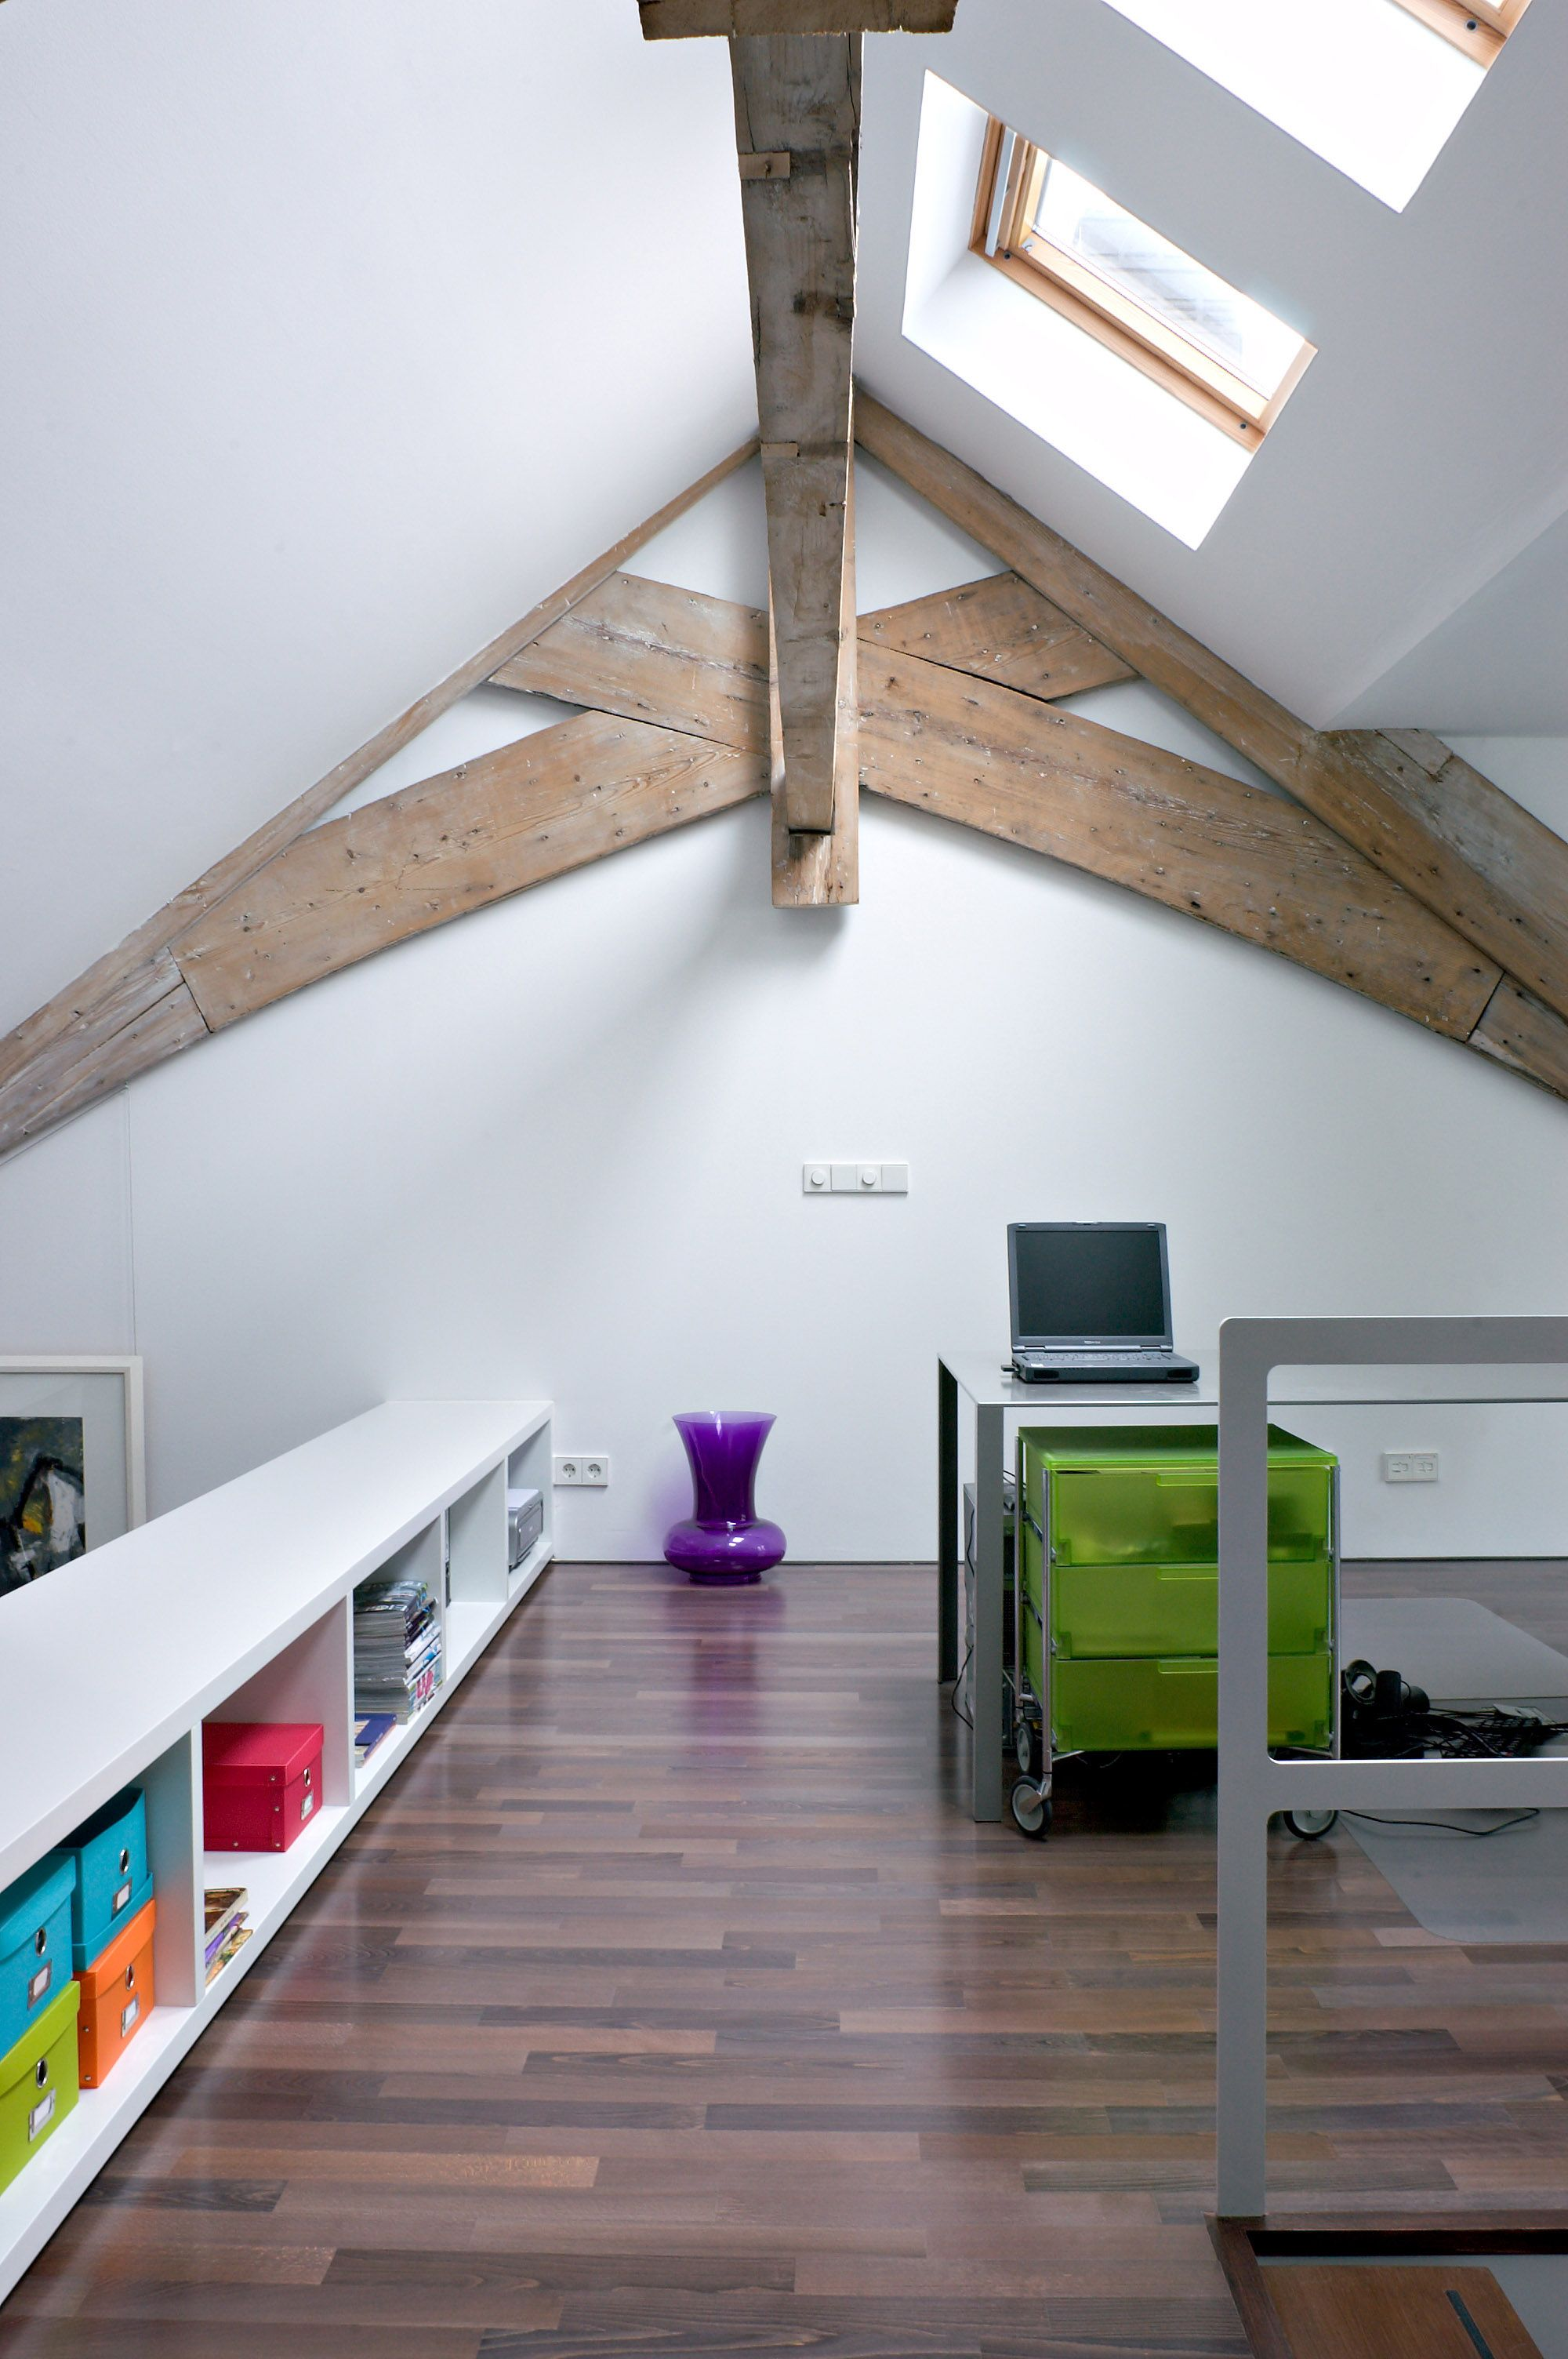 Mezzanine Loft Conversion